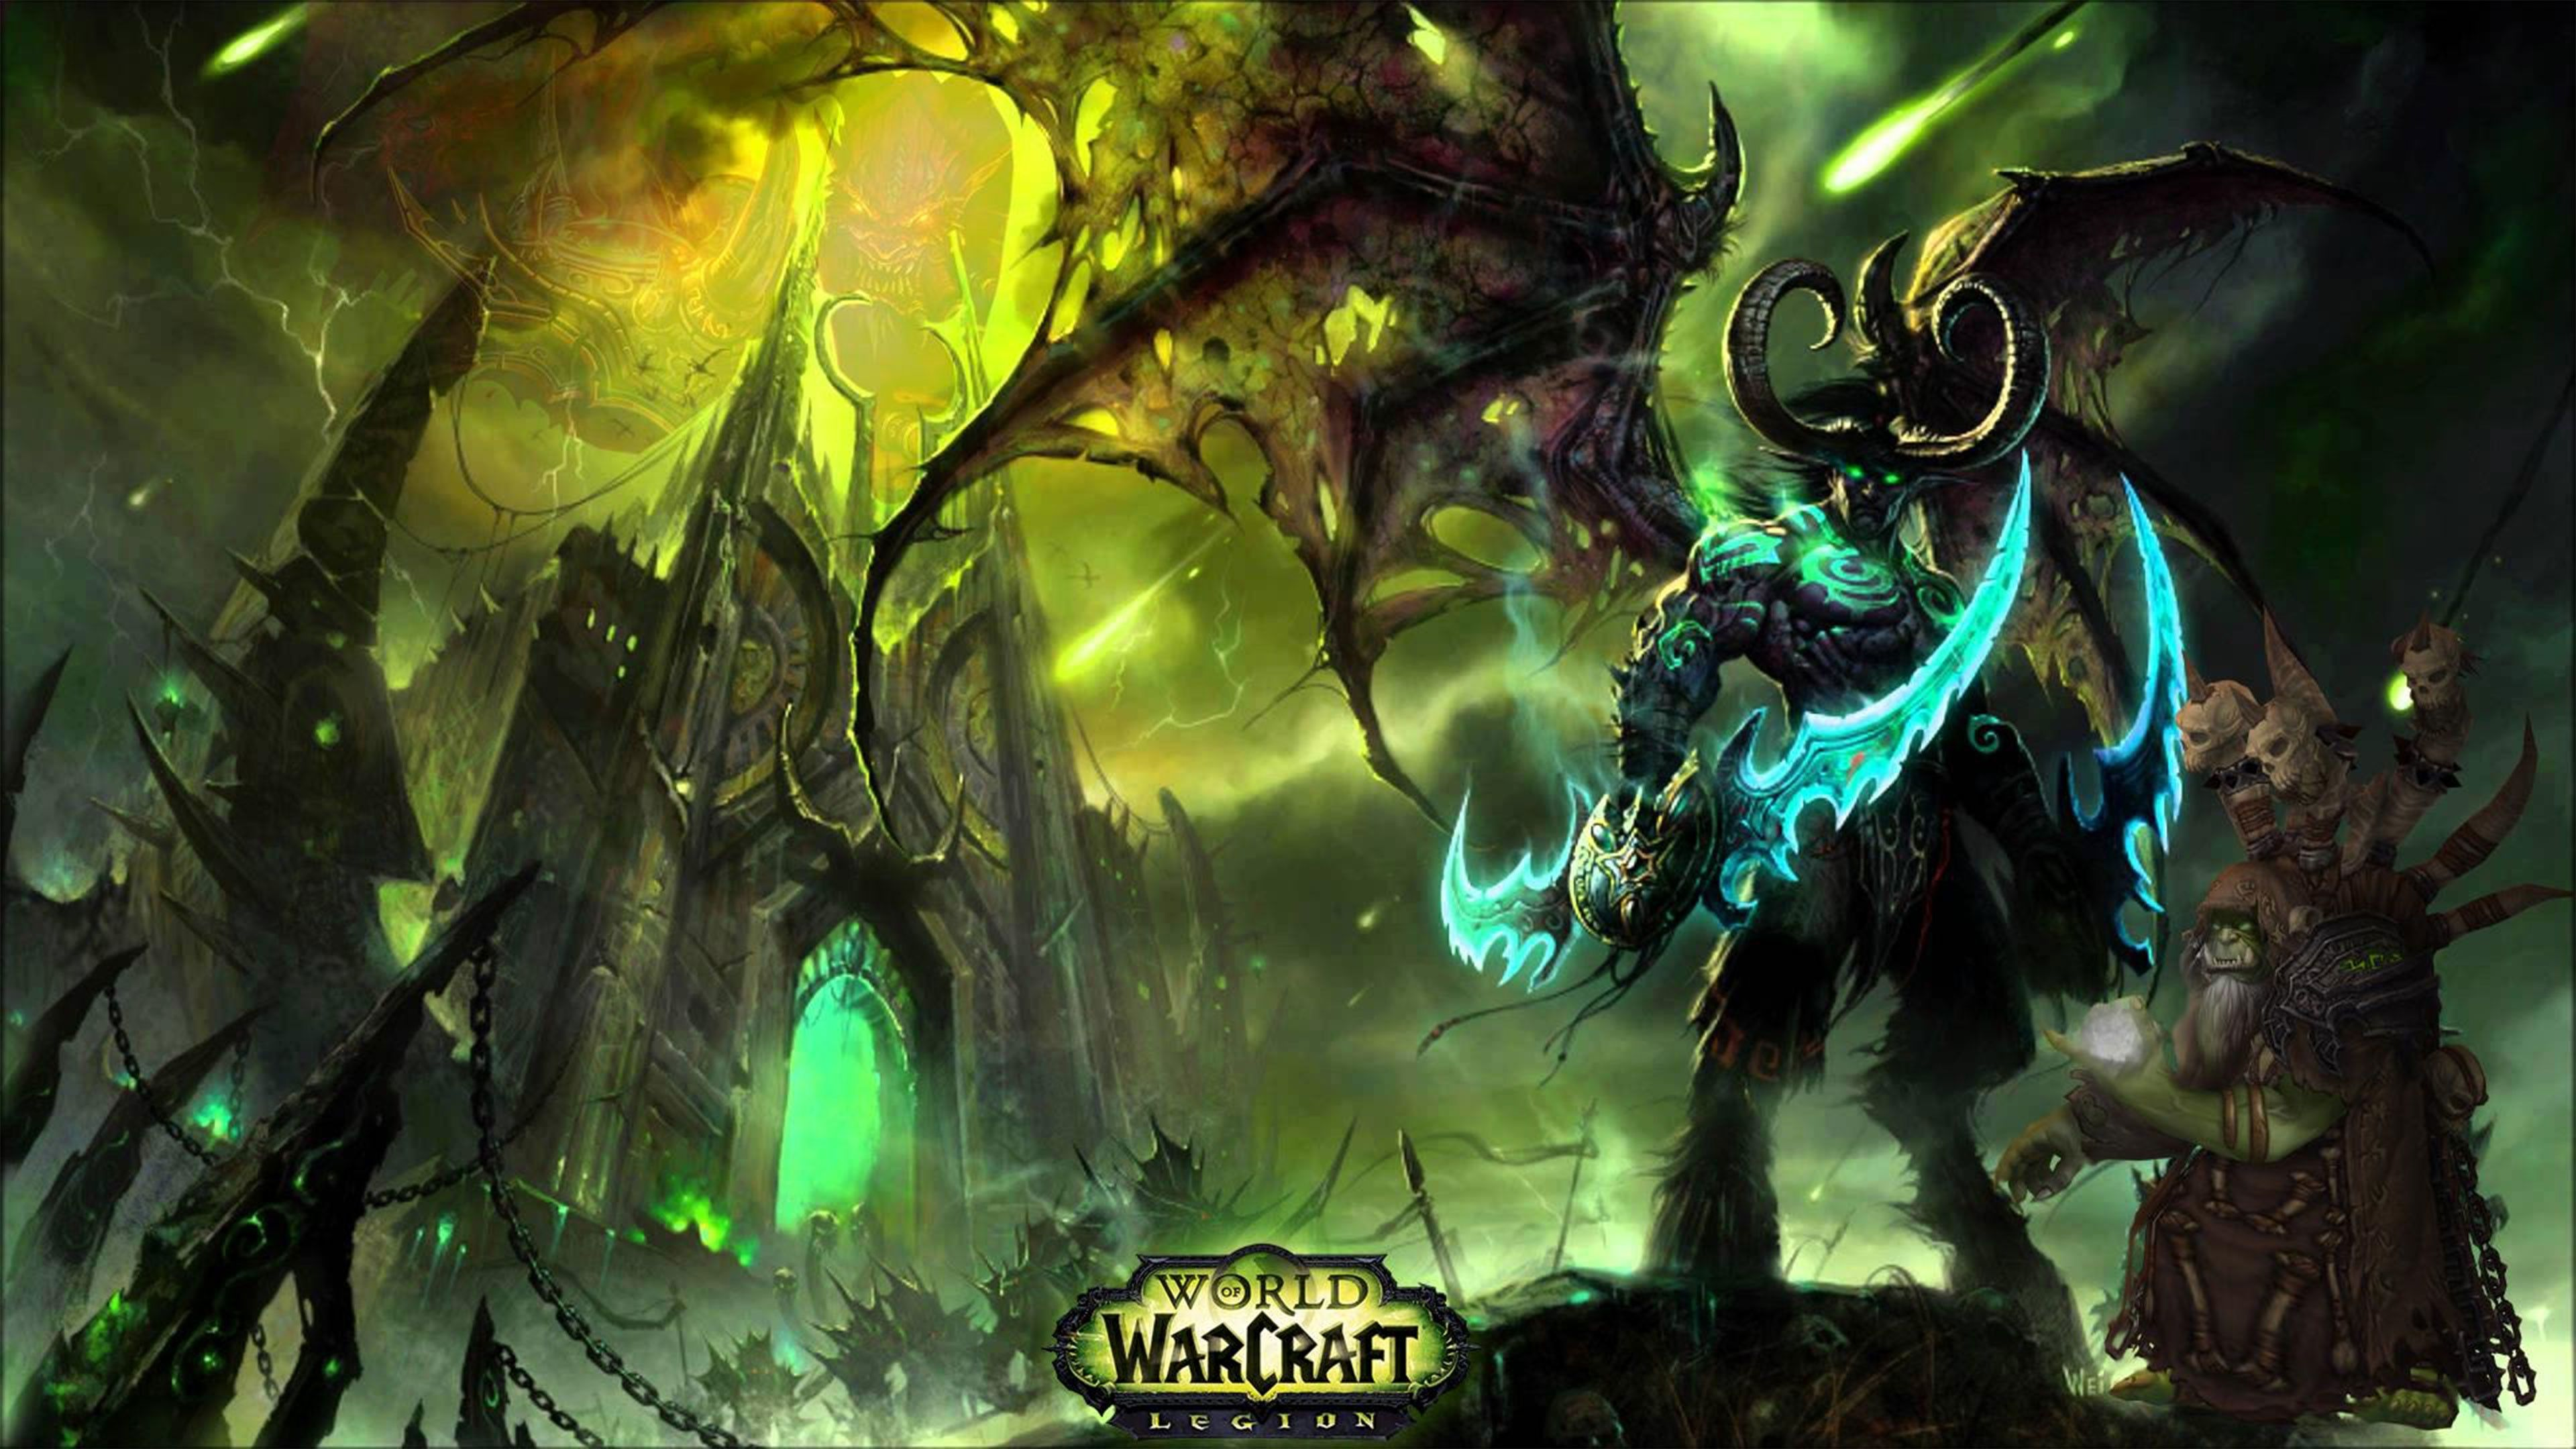 4k World Of Warcraft Wallpapers Top Free 4k World Of Warcraft